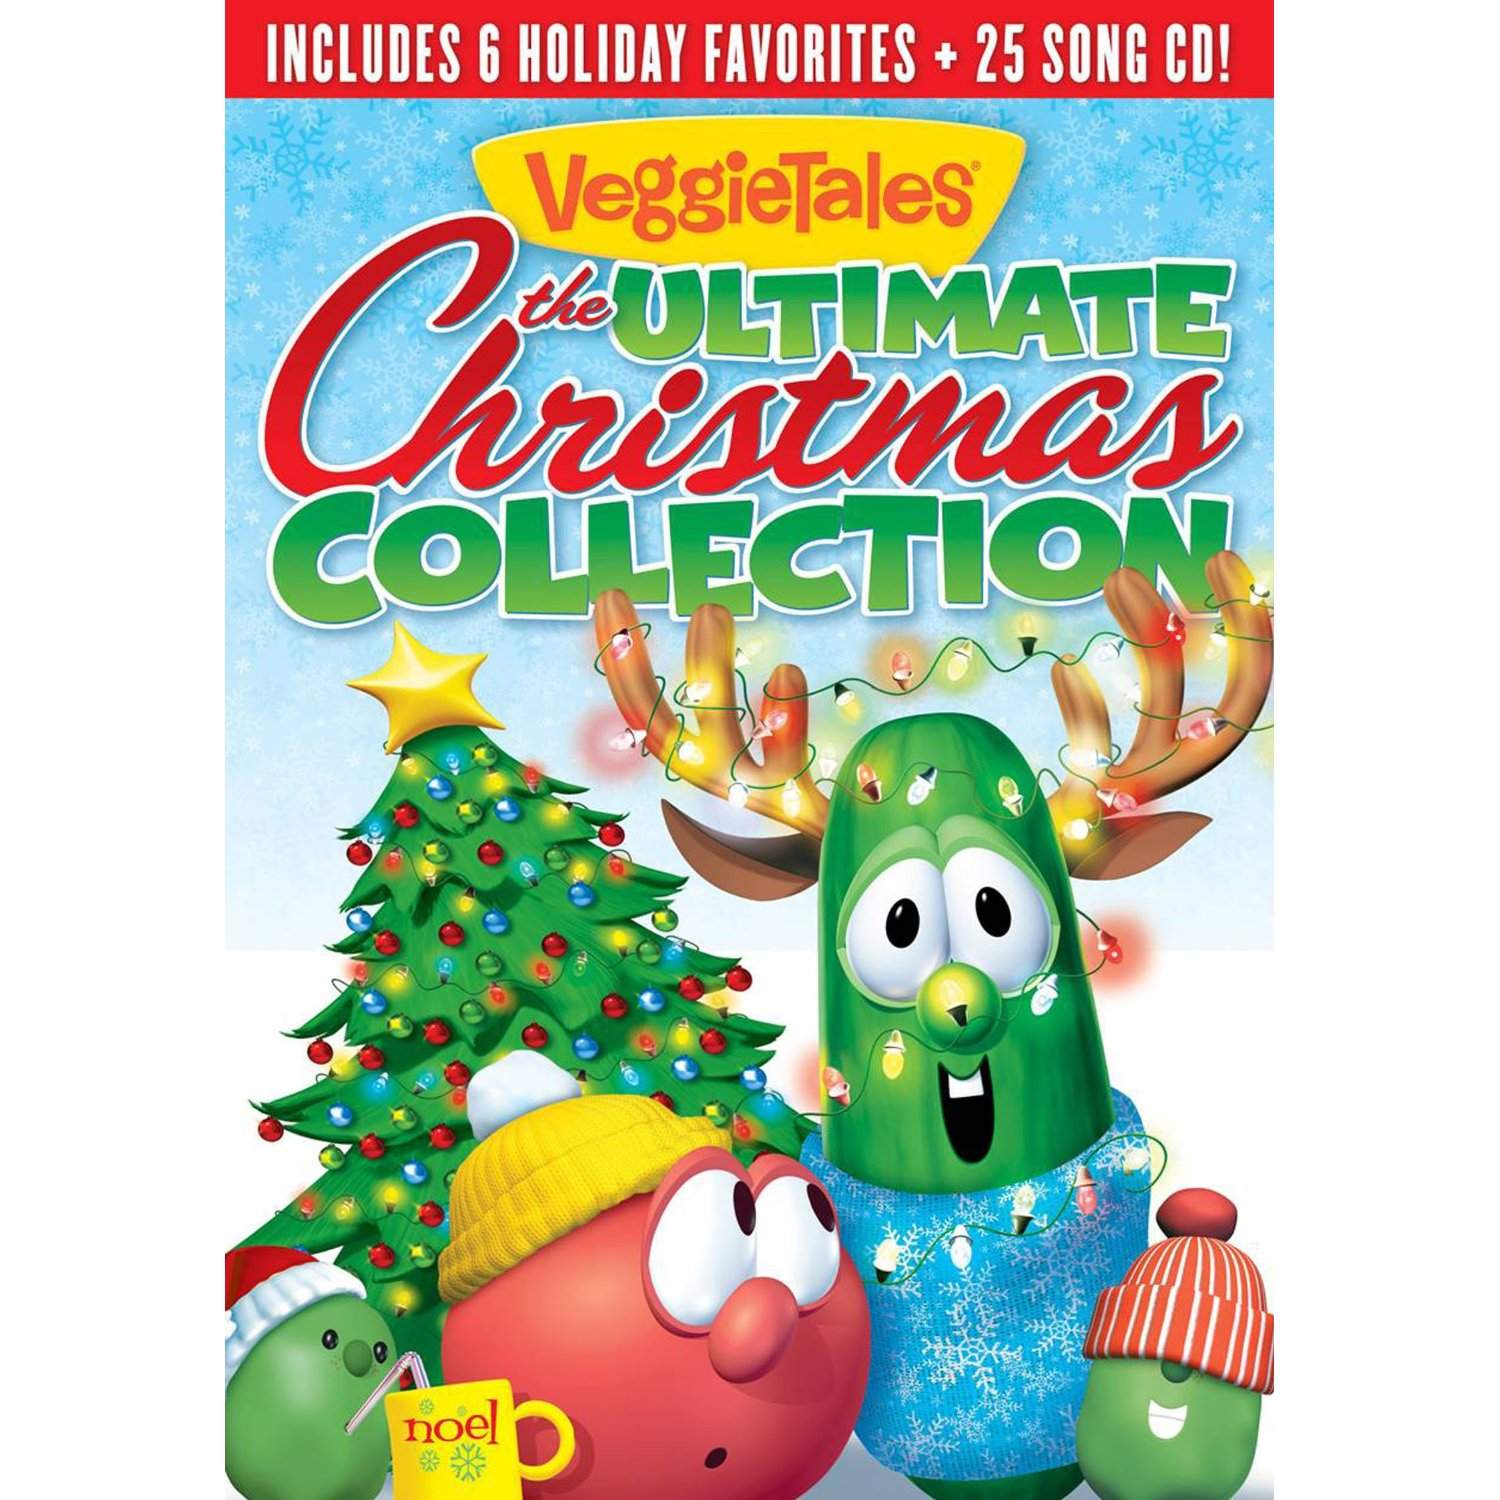 Ultimate Christmas Collection: VeggieTales: The Ultimate Christmas Collection